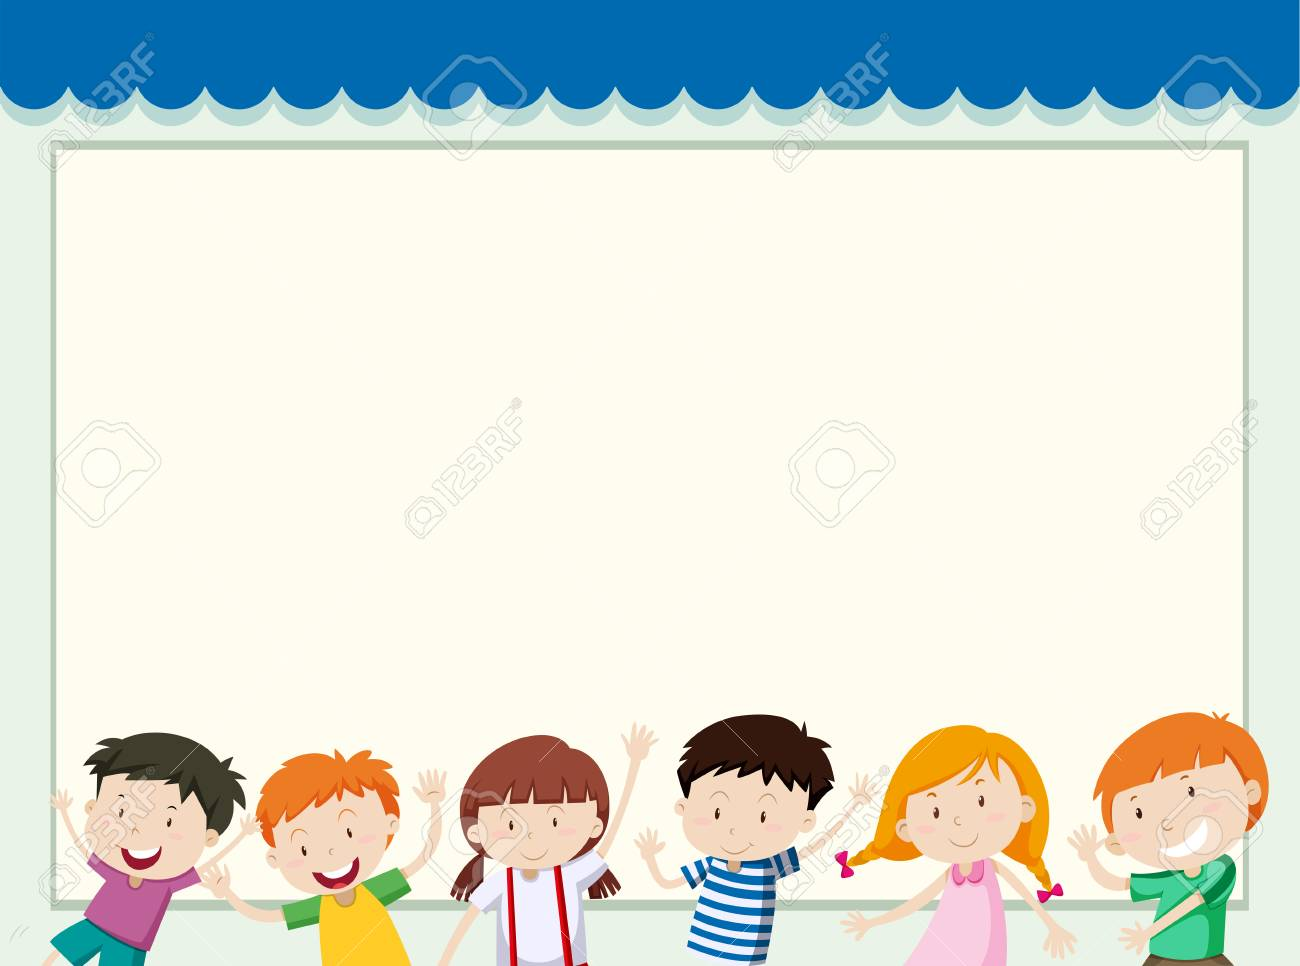 hight resolution of border template with children in background illustration stock vector 81697608